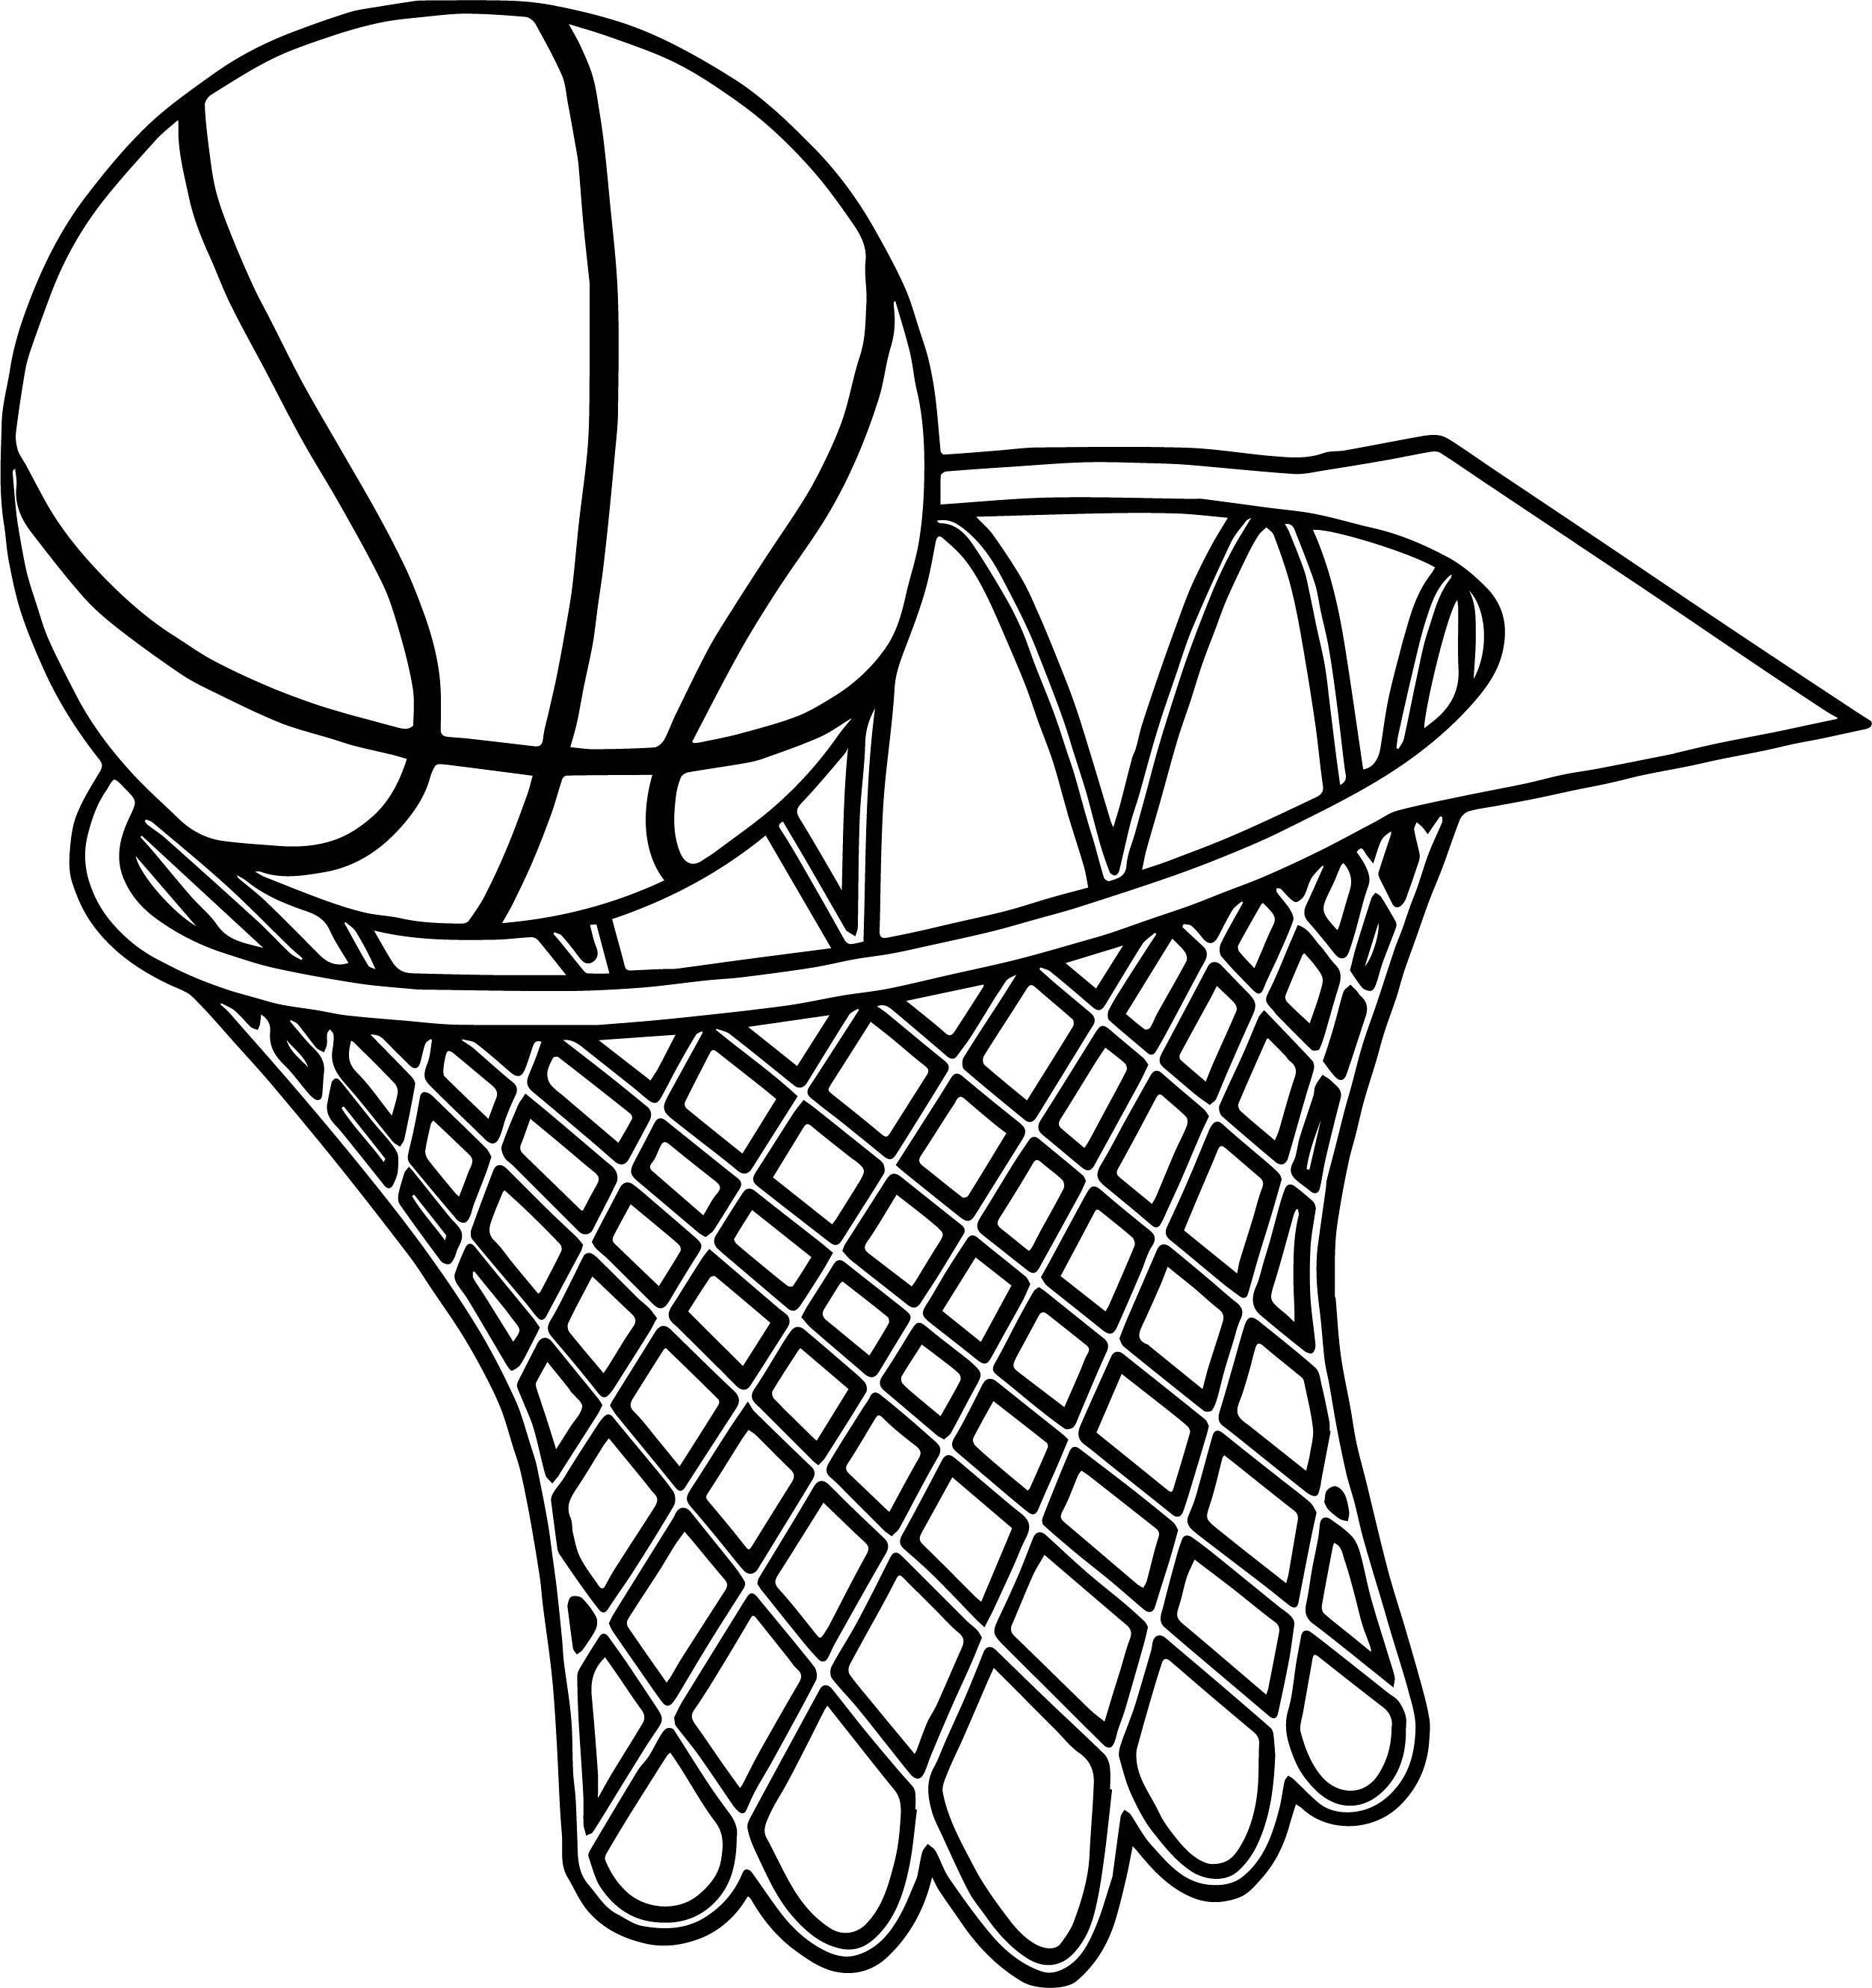 Basketball Goal Coloring Pages At Getcolorings